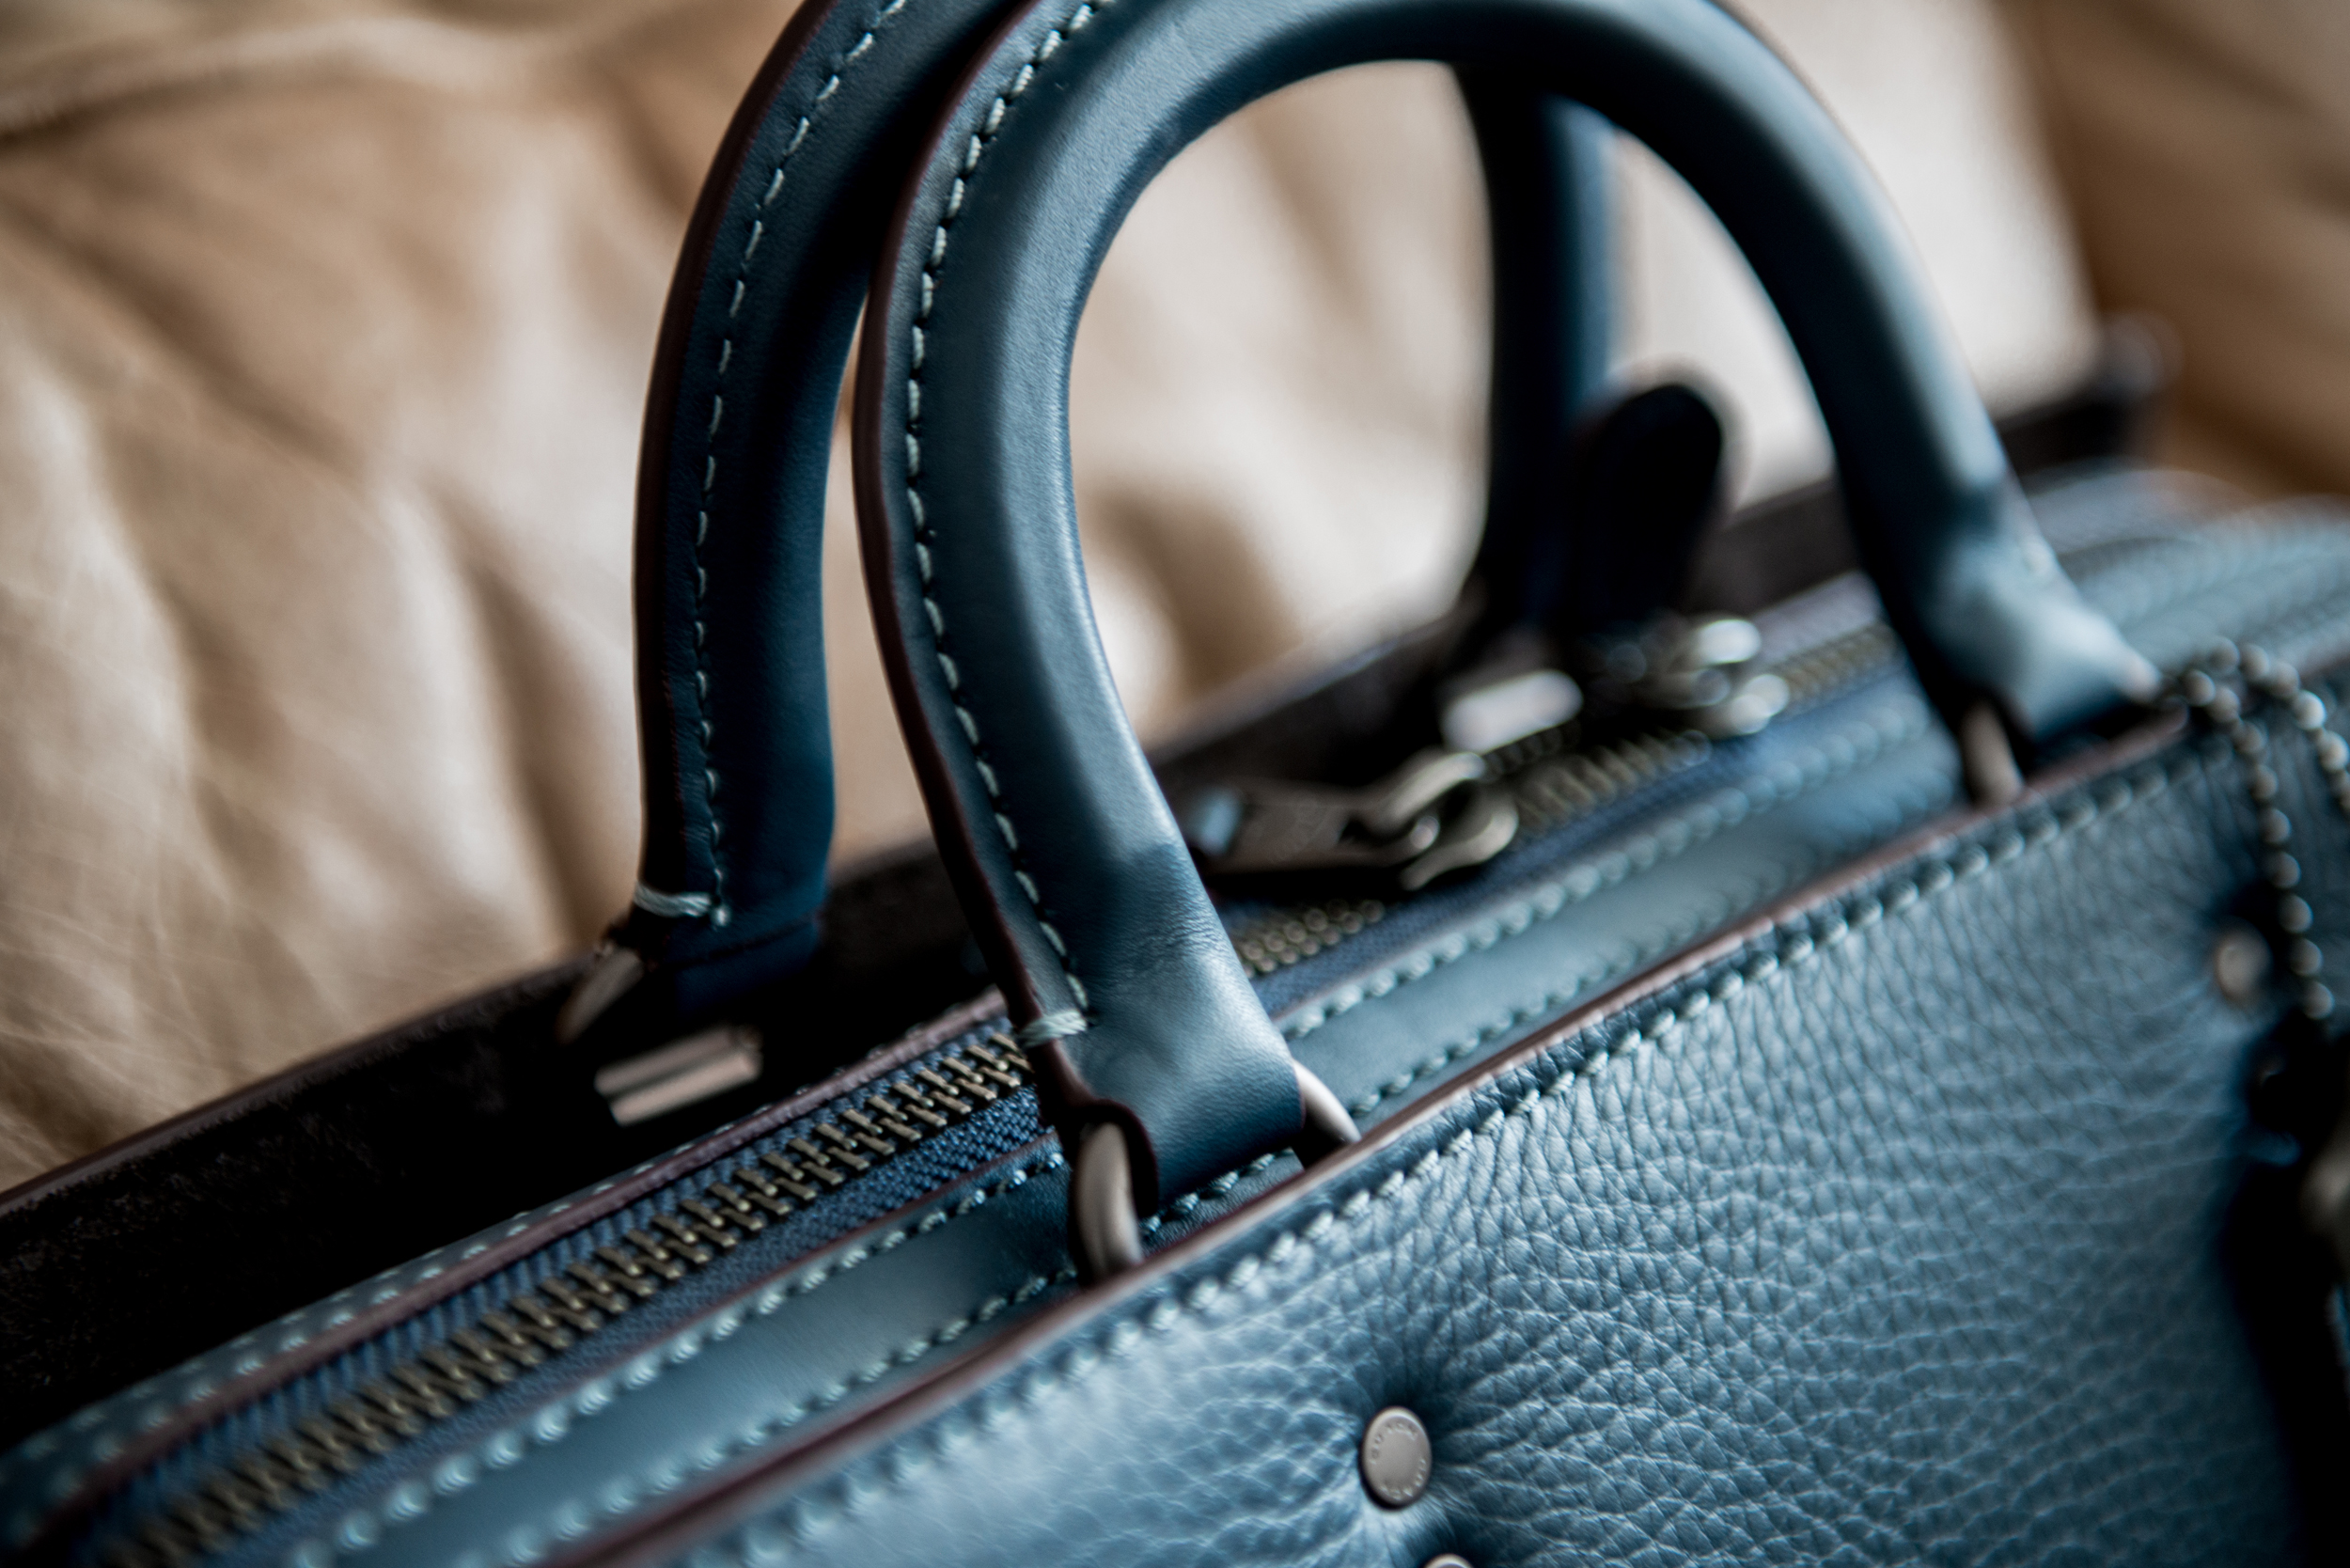 GOING ROGUE - INTRODUCING THE COACH ROGUE BRIEFCASE